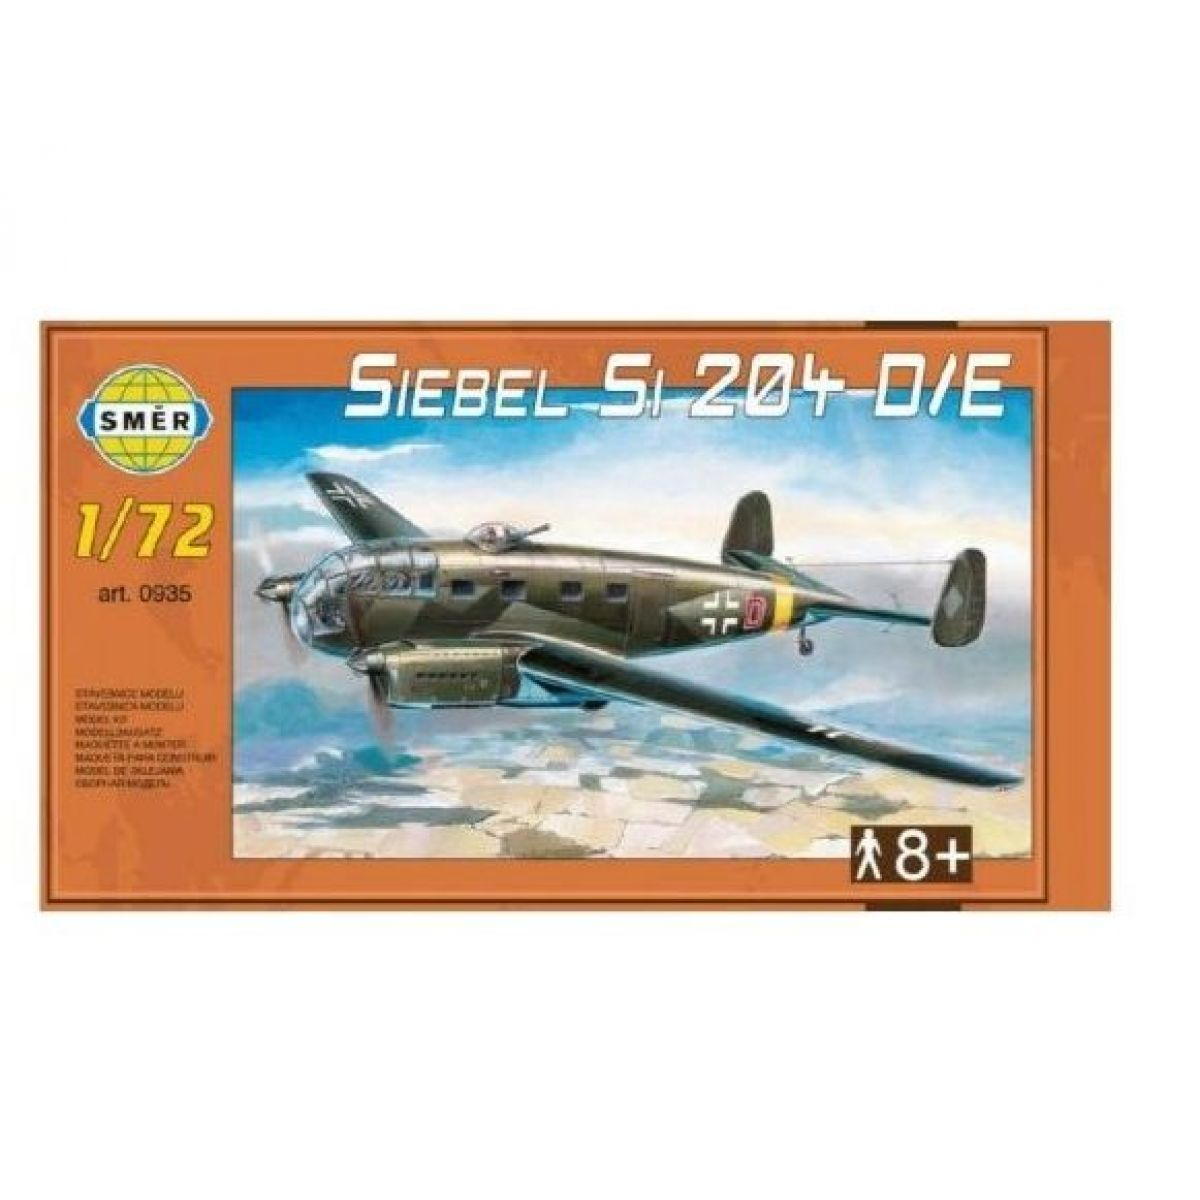 Směr Model Siebel Si 204 DE 1:72